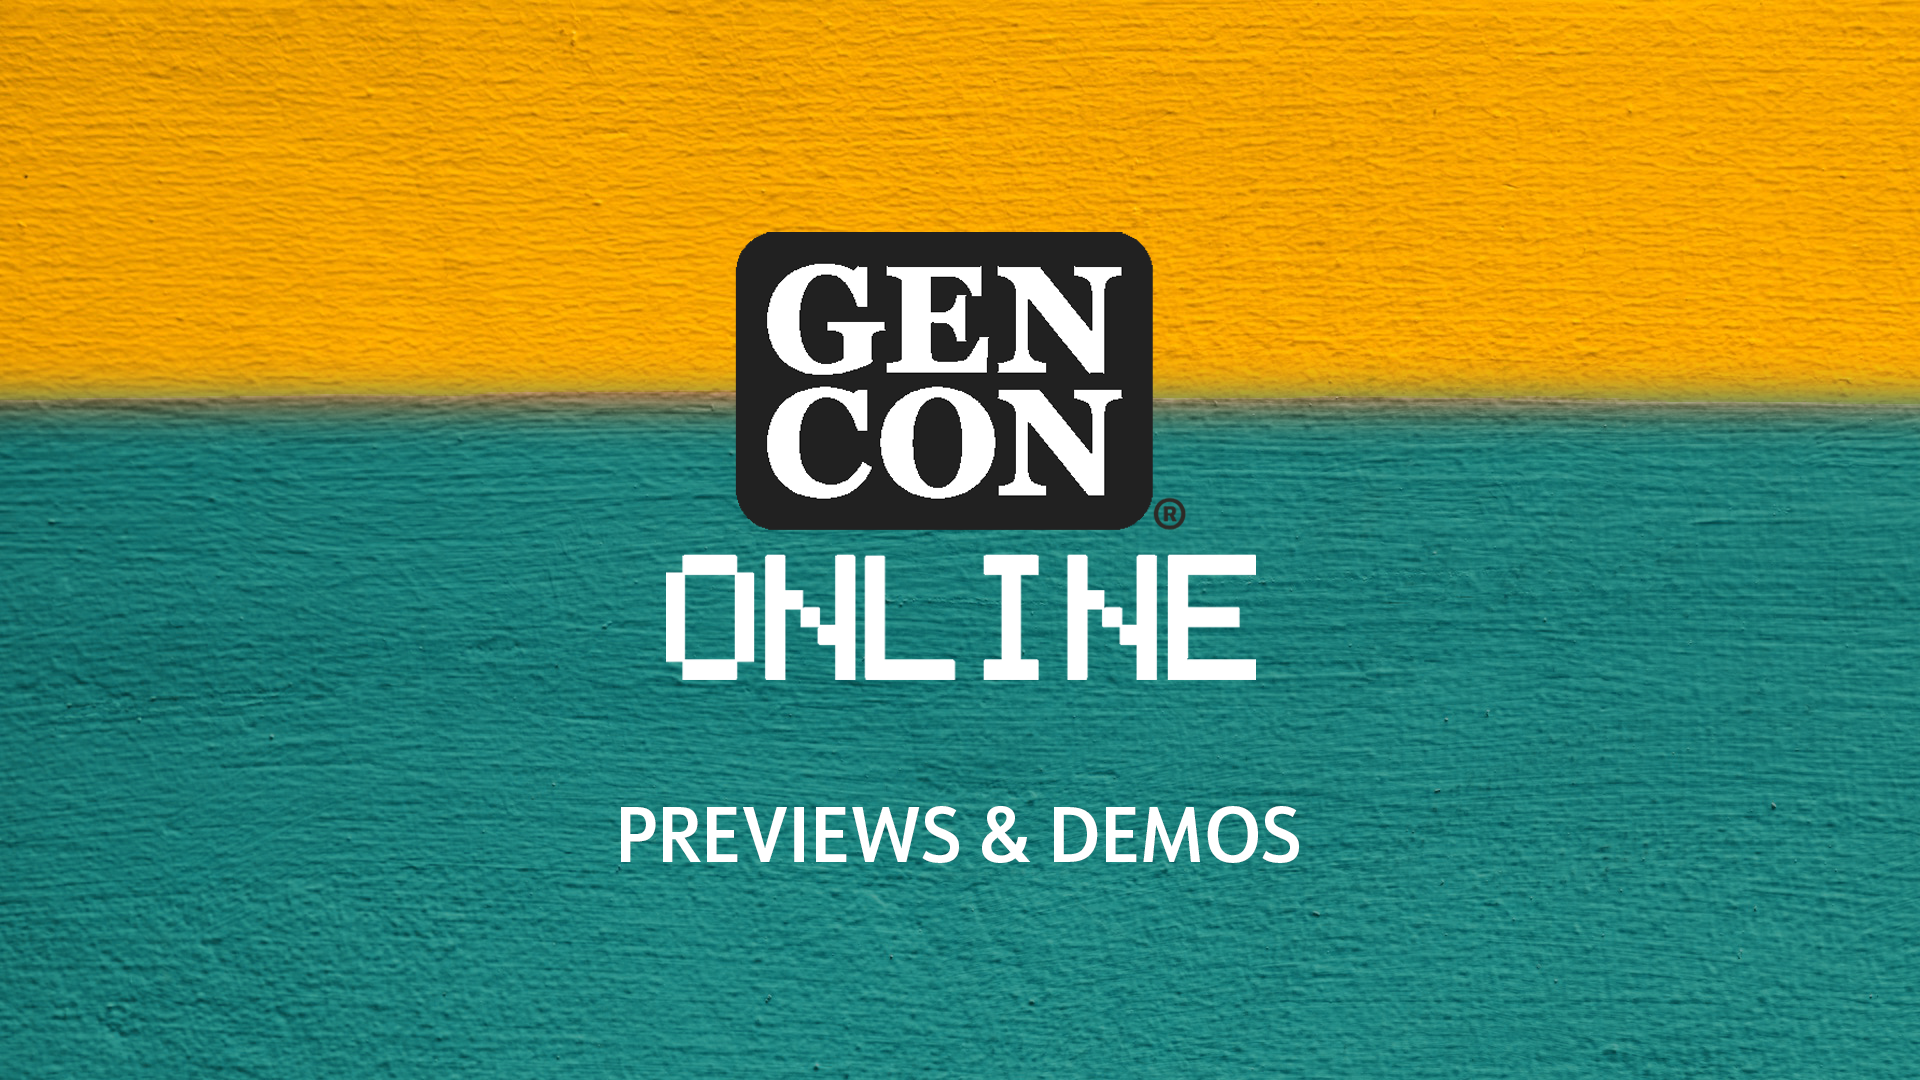 Gen Con 2020 Previews and Demos